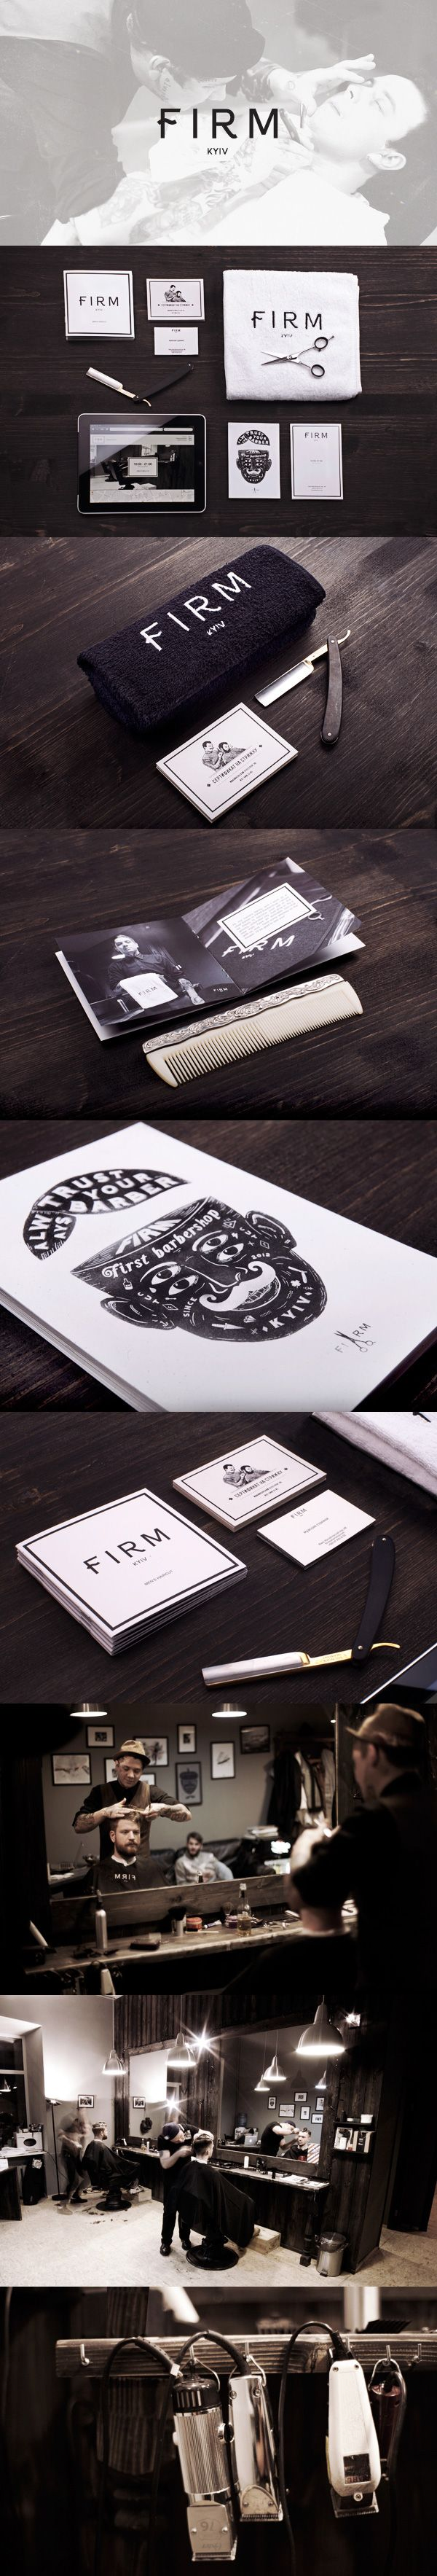 FIRM barbershop identity, stationary, interior, branding